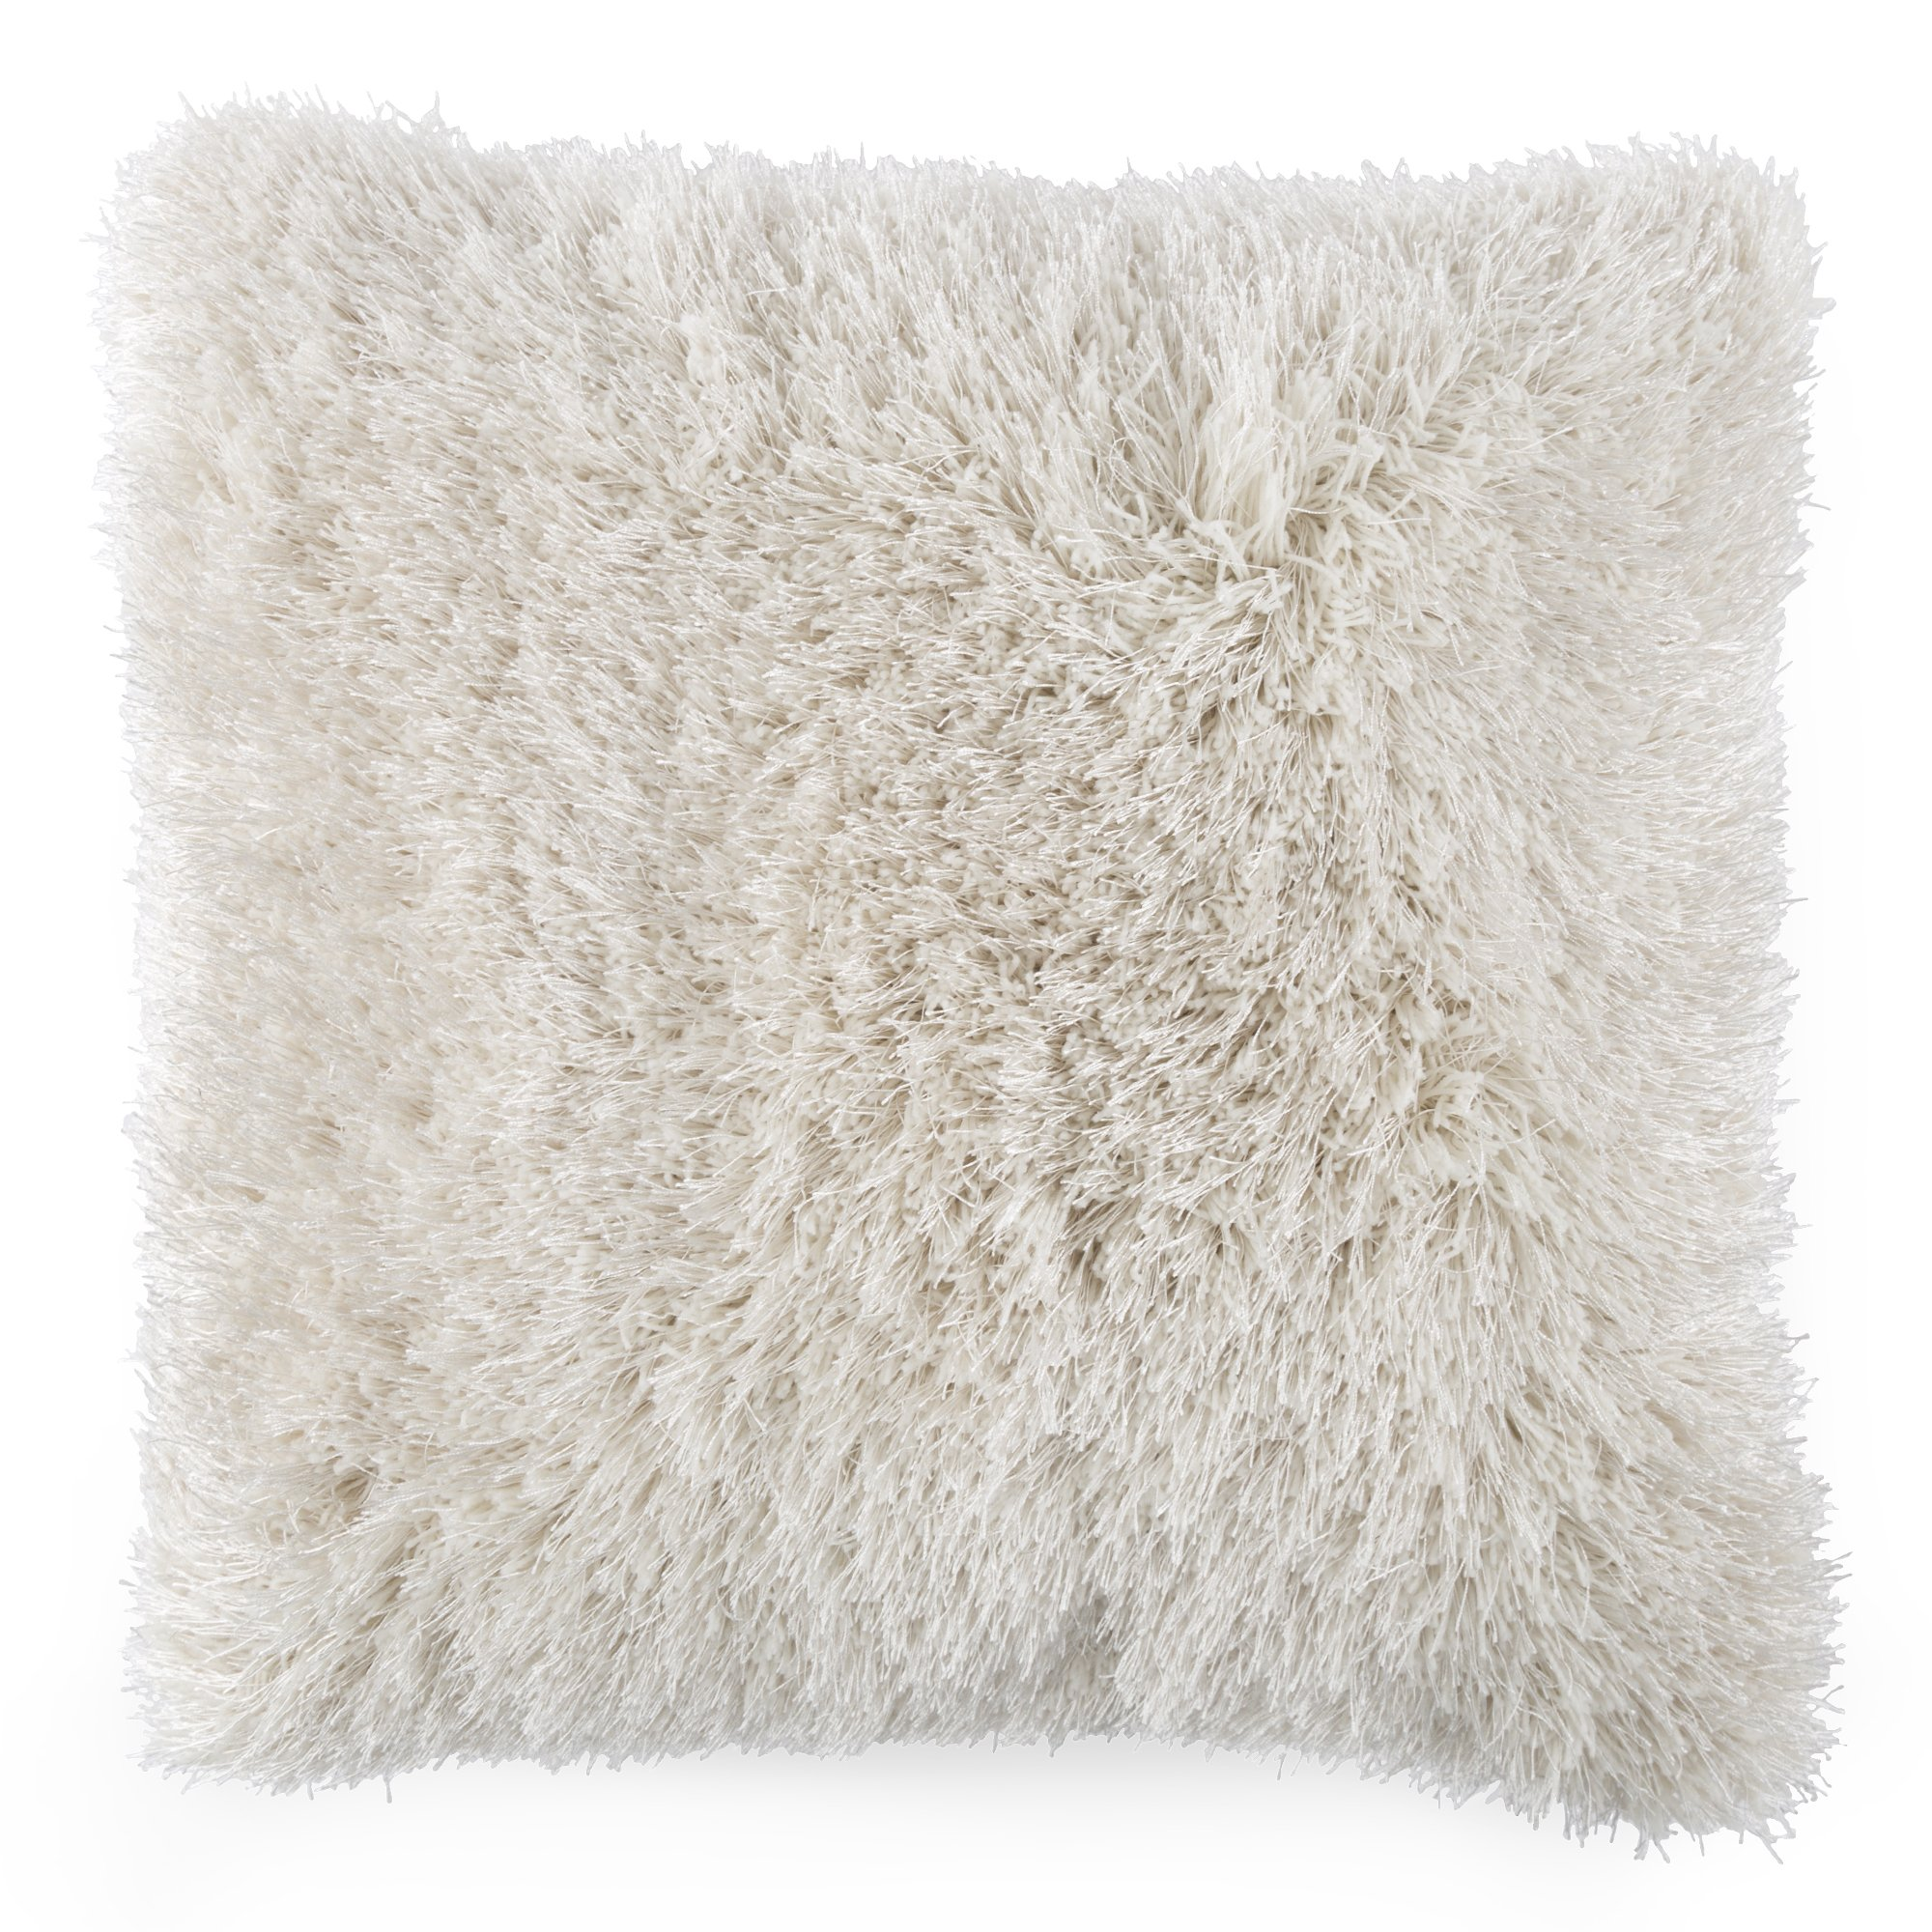 Lavish Home Oversized Floor or Throw Pillow Square Luxury Plush- Shag Faux Fur Glam Decor Cushion for Bedroom Living Room or Dorm (Beige)